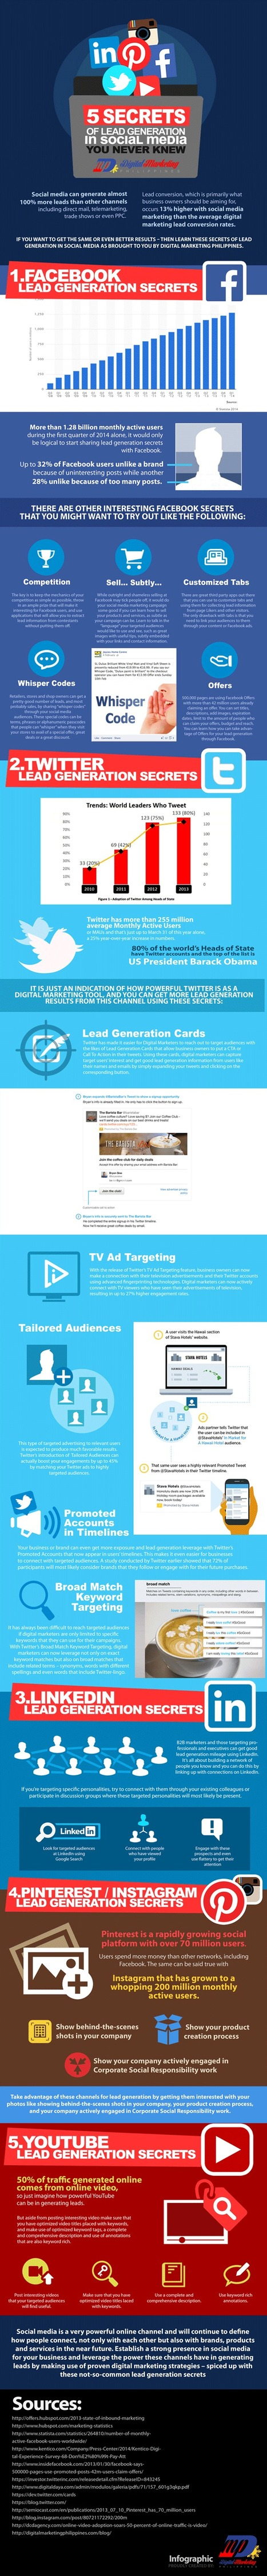 5 Secrets of Lead Generation in Social Media You Never Knew [Infographic]   Social Media Marketing and Lead Generation for B2B   Scoop.it